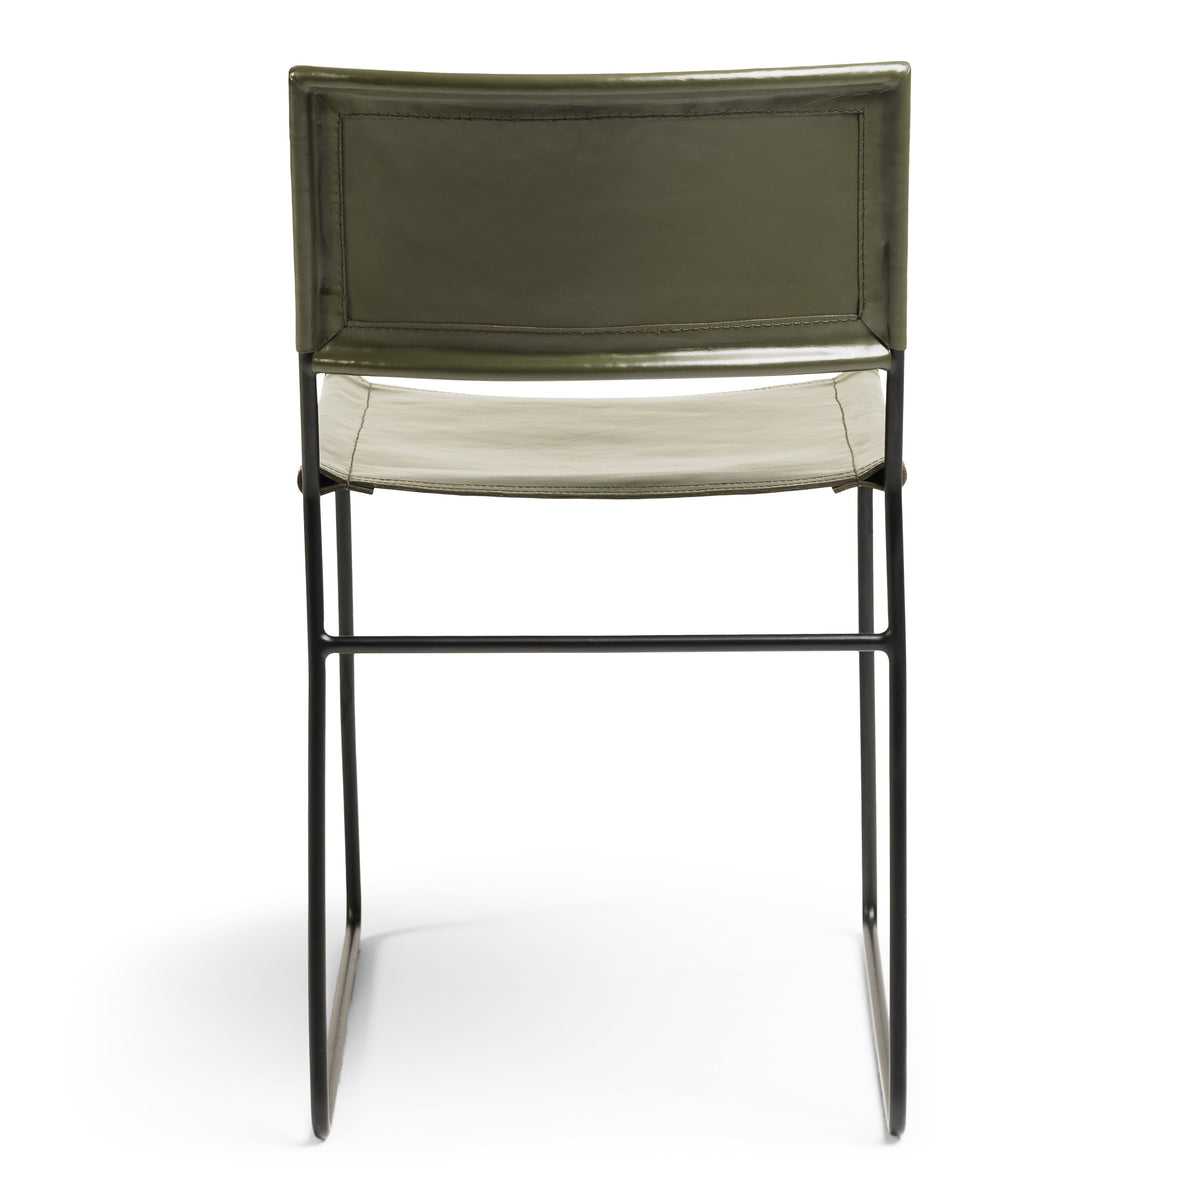 Jones Dining Chair - Olive